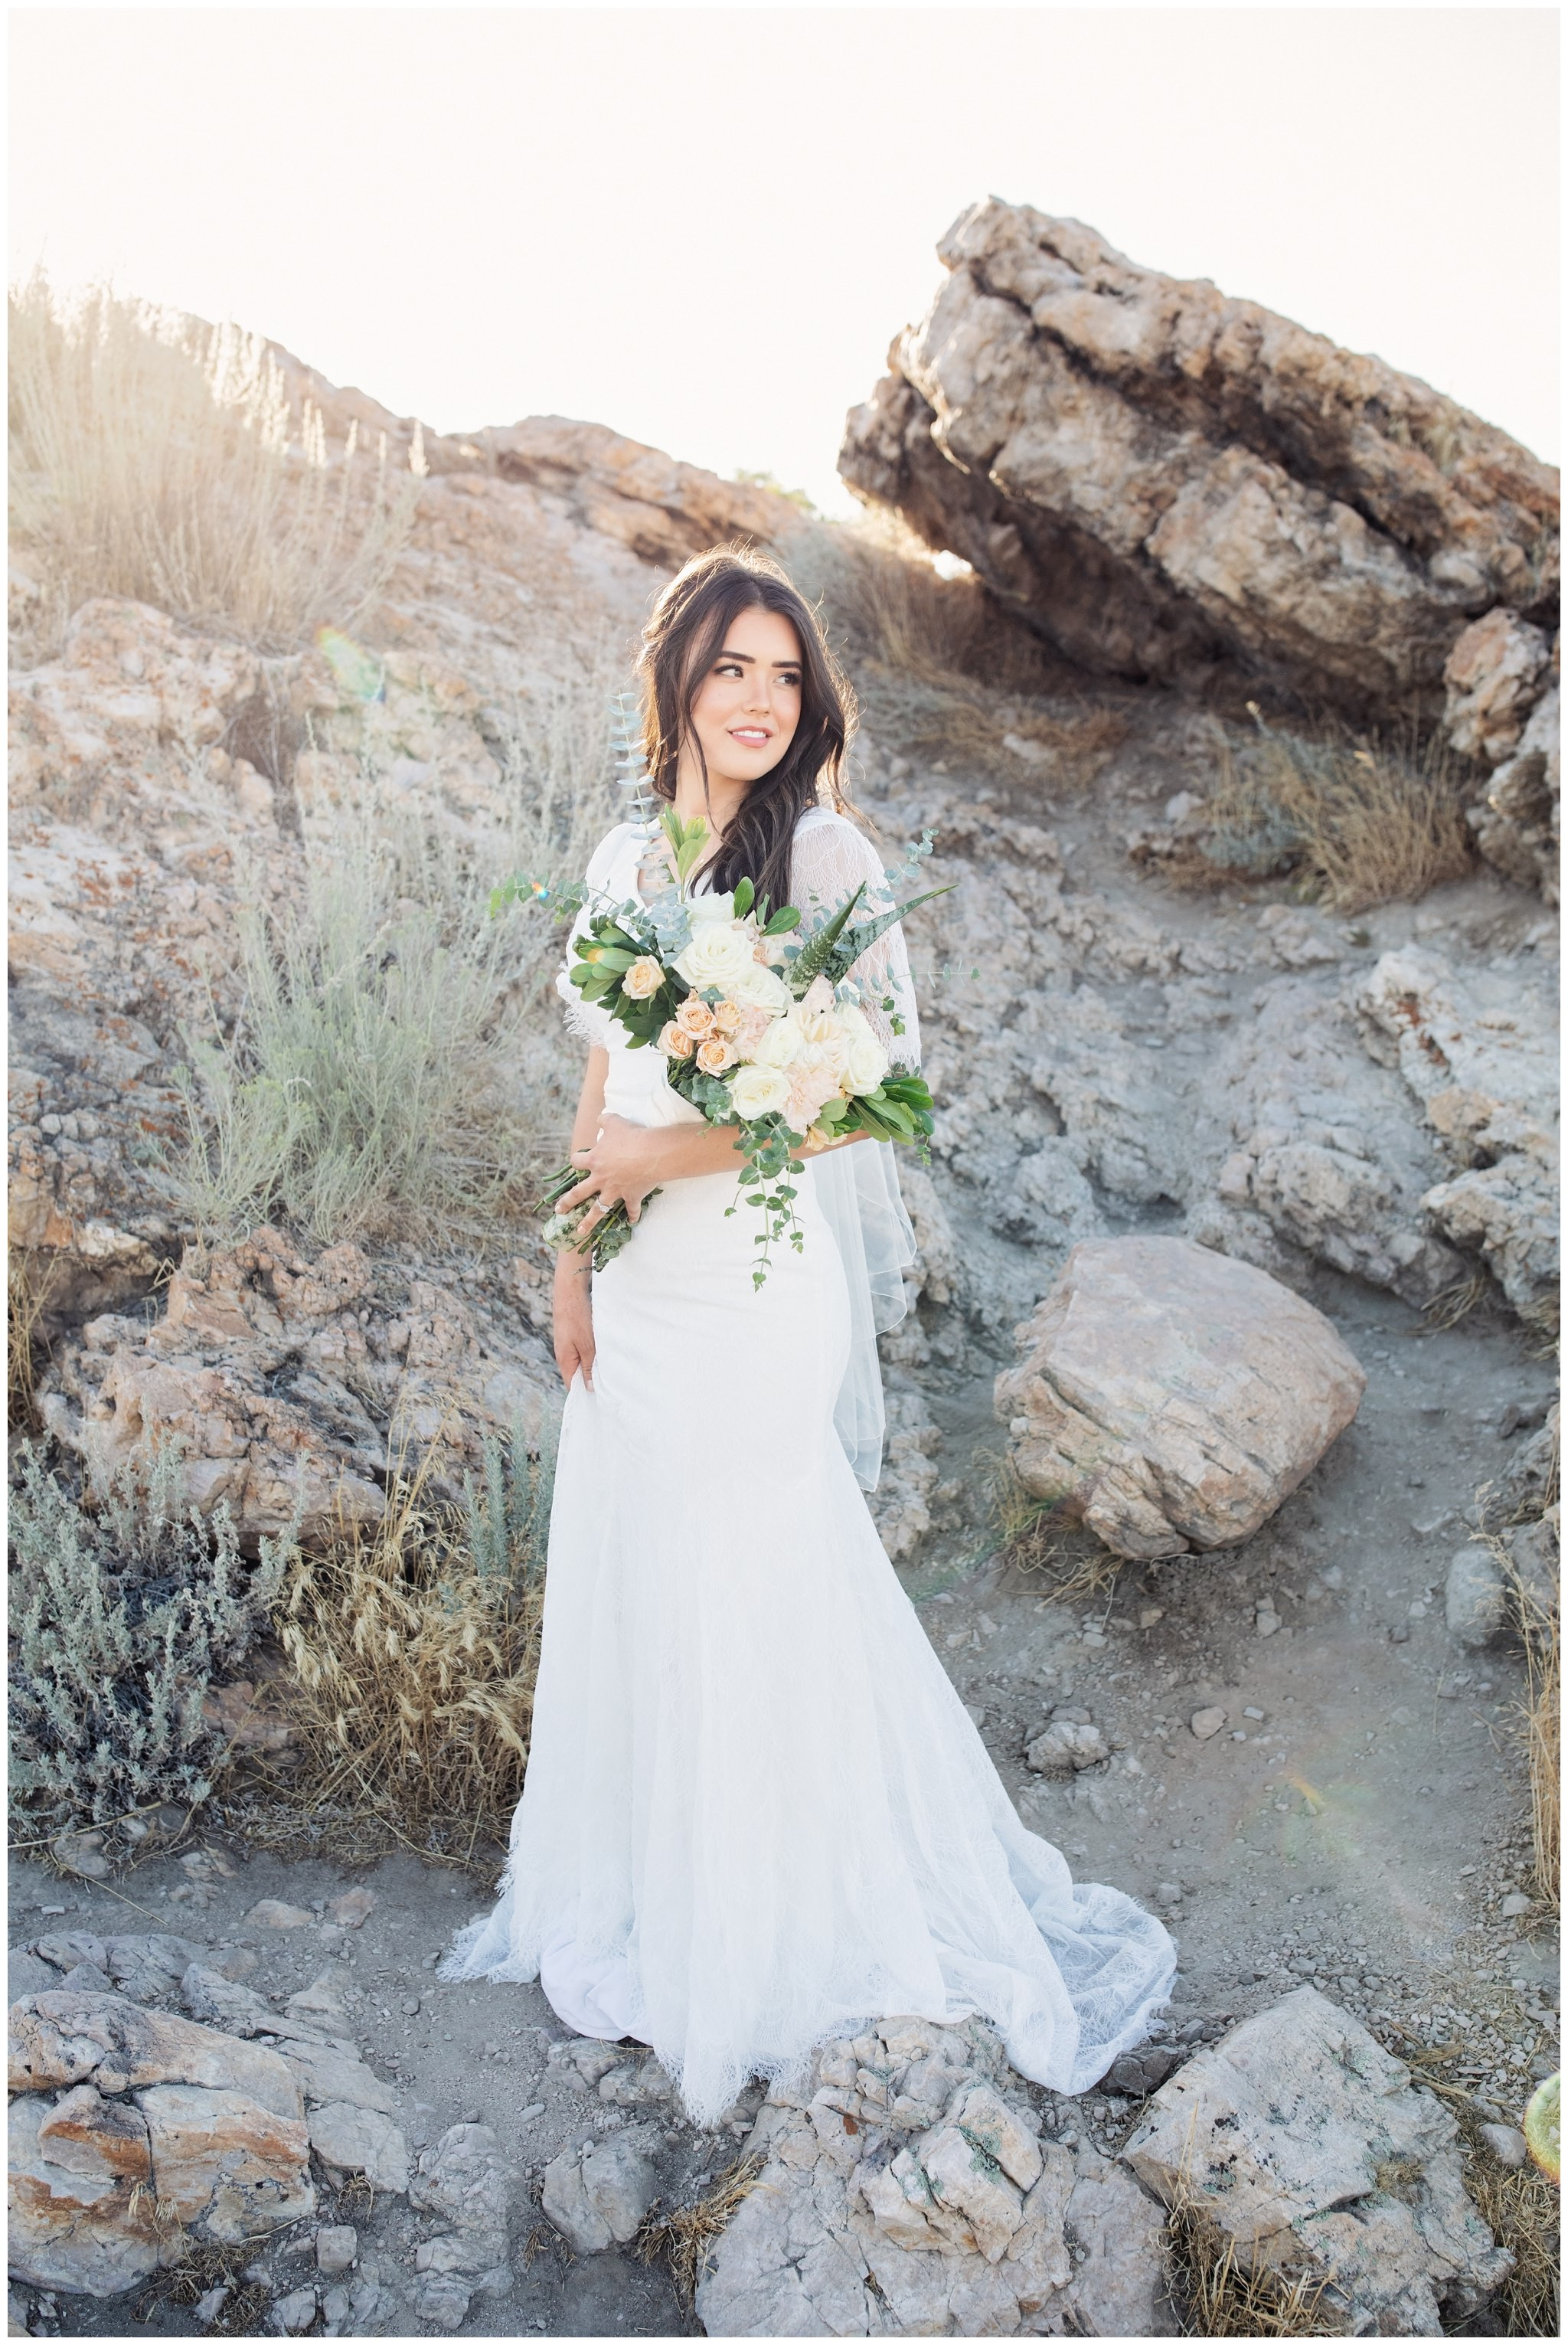 Bride's pictures of her holding wedding bouquet looking off in the distance near rocky background in Utah